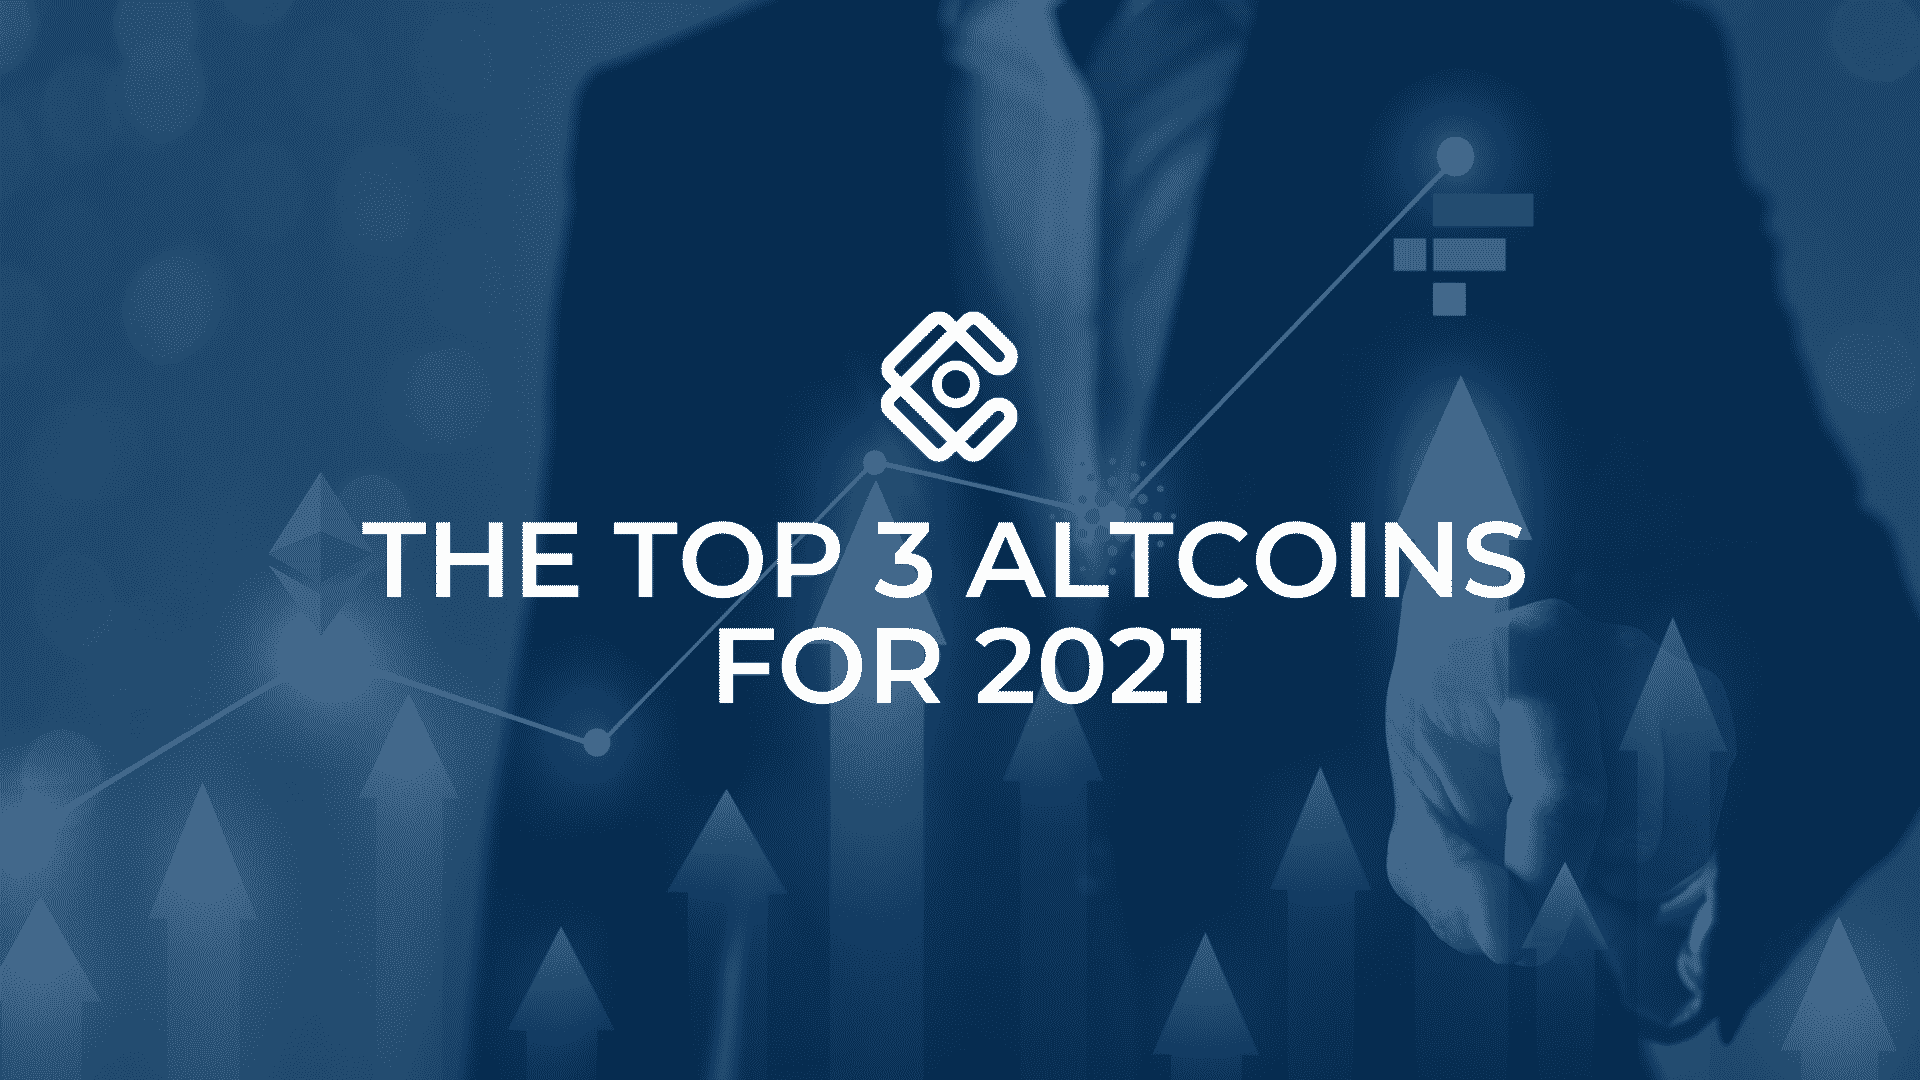 The top 3 altcoins for 2021